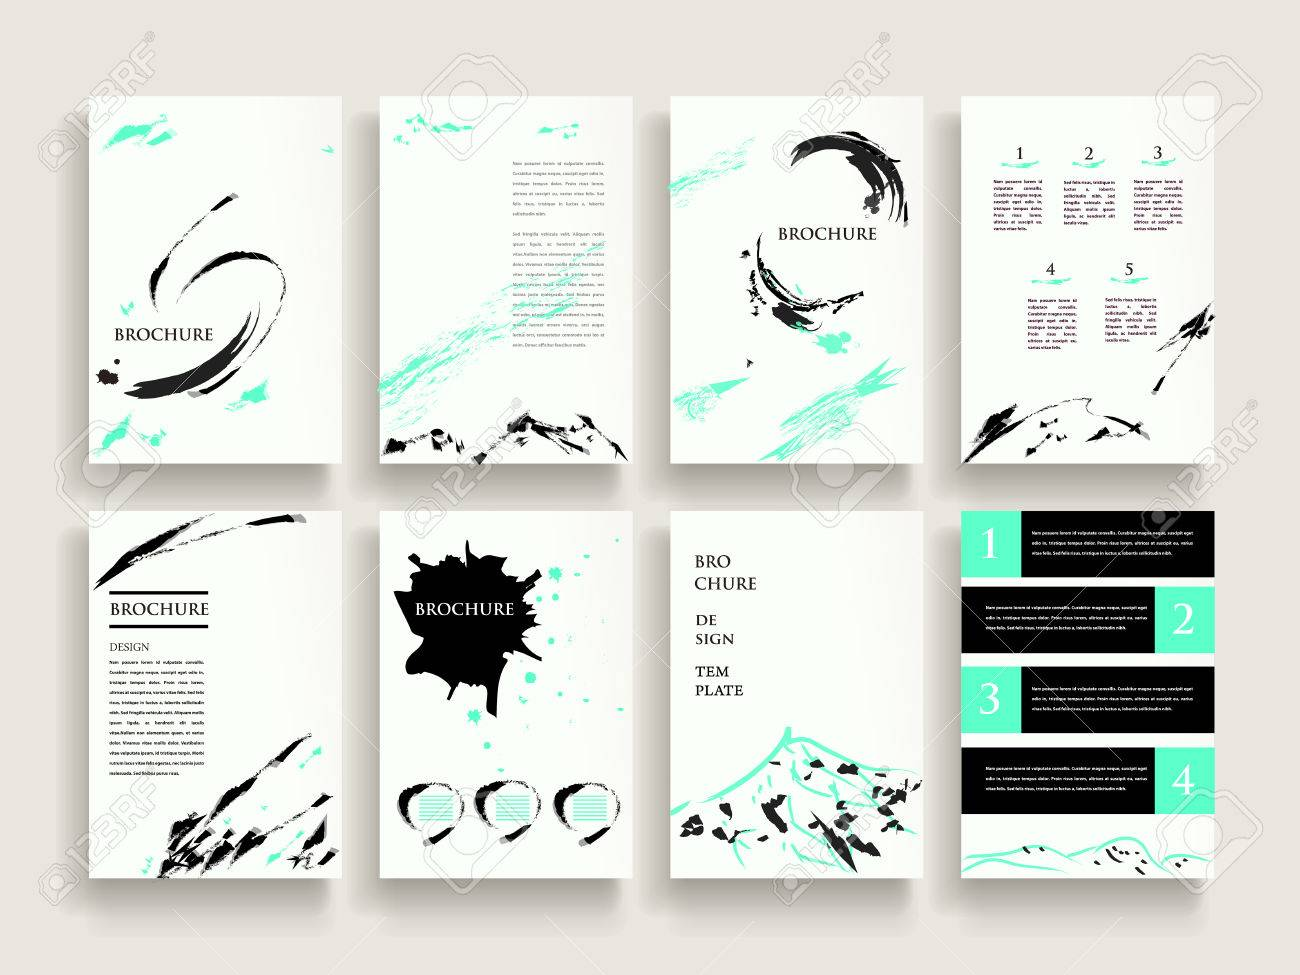 Elegant Brochure Template Design Set With Brush Stroke Elements